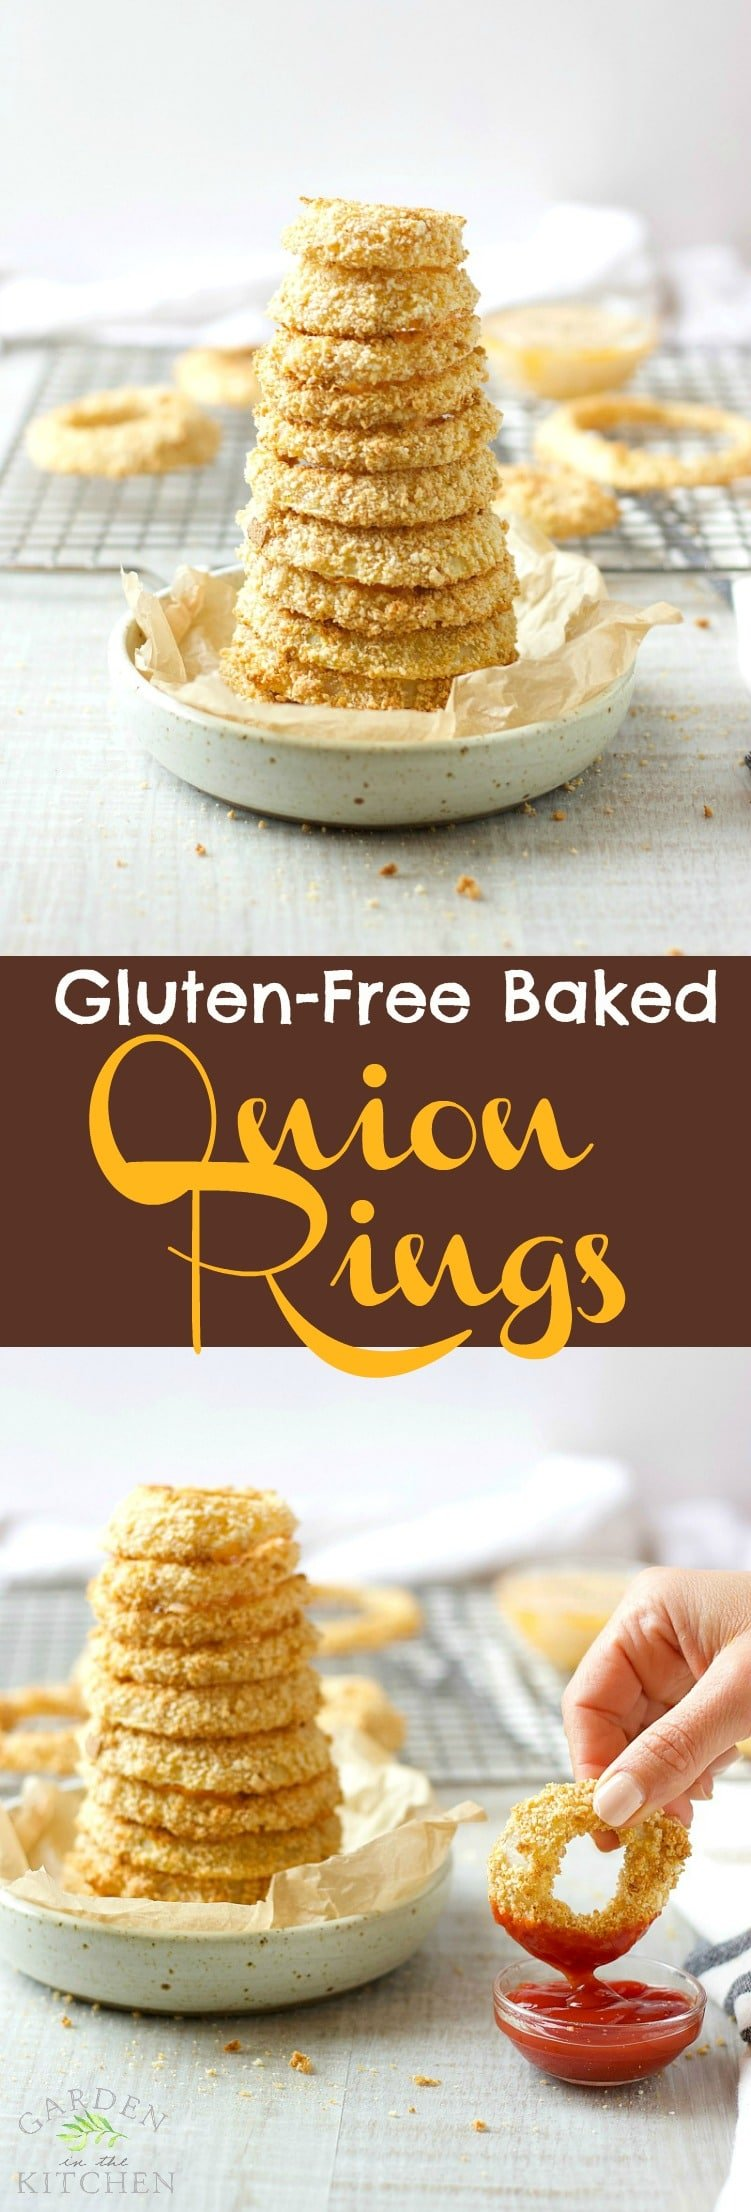 Gluten-Free Baked Onion Rings